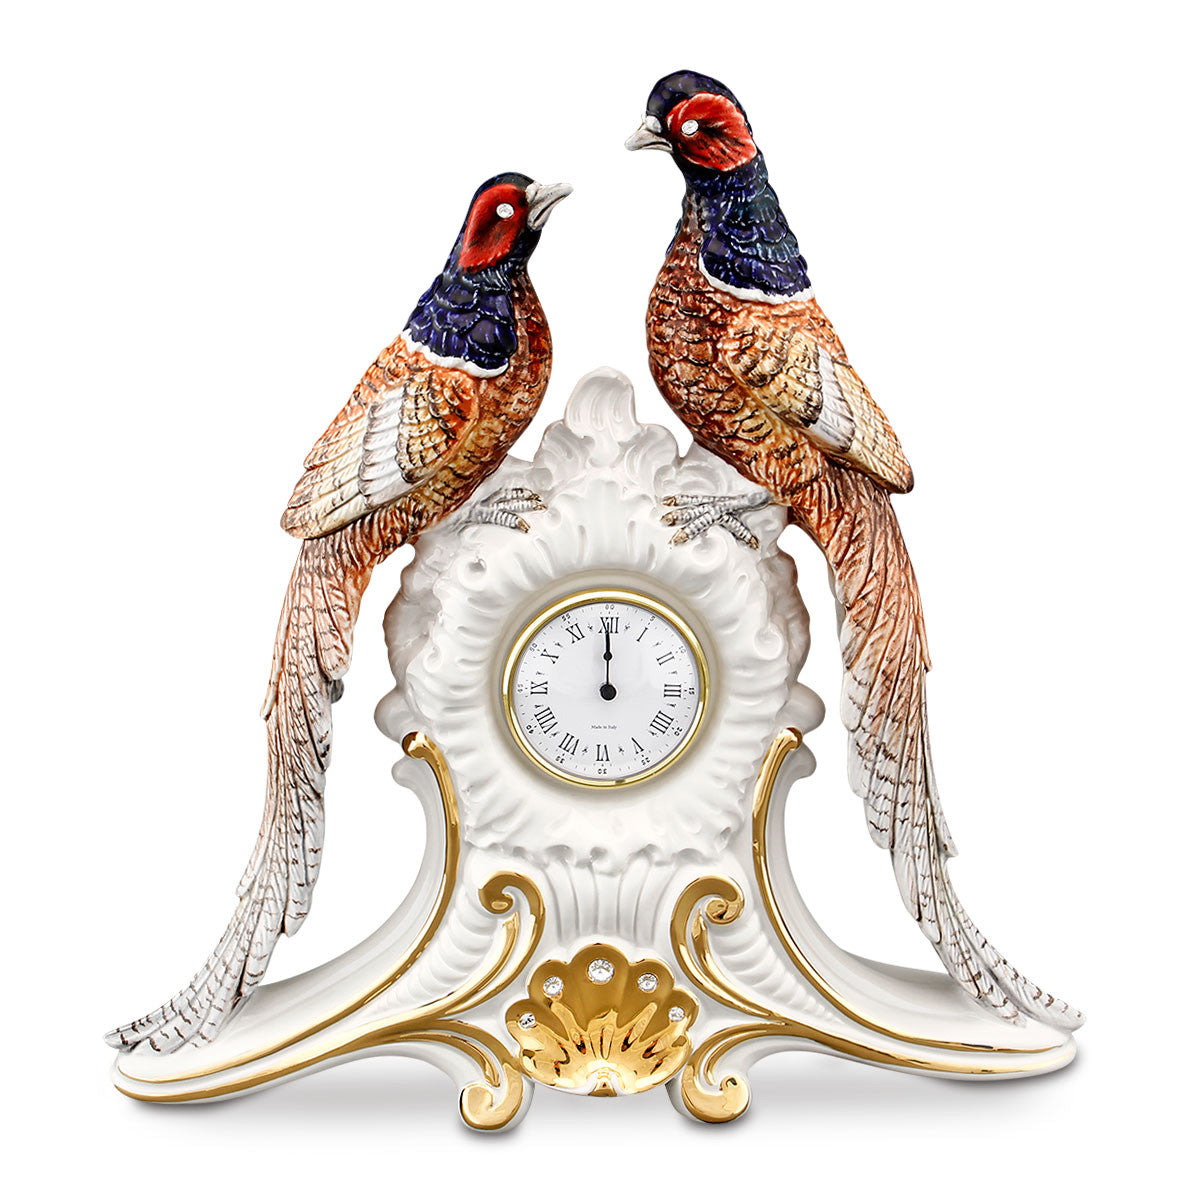 ceramic porcelain pheasants clock finished in pure gold and colors with Swarovski handmade in Italy